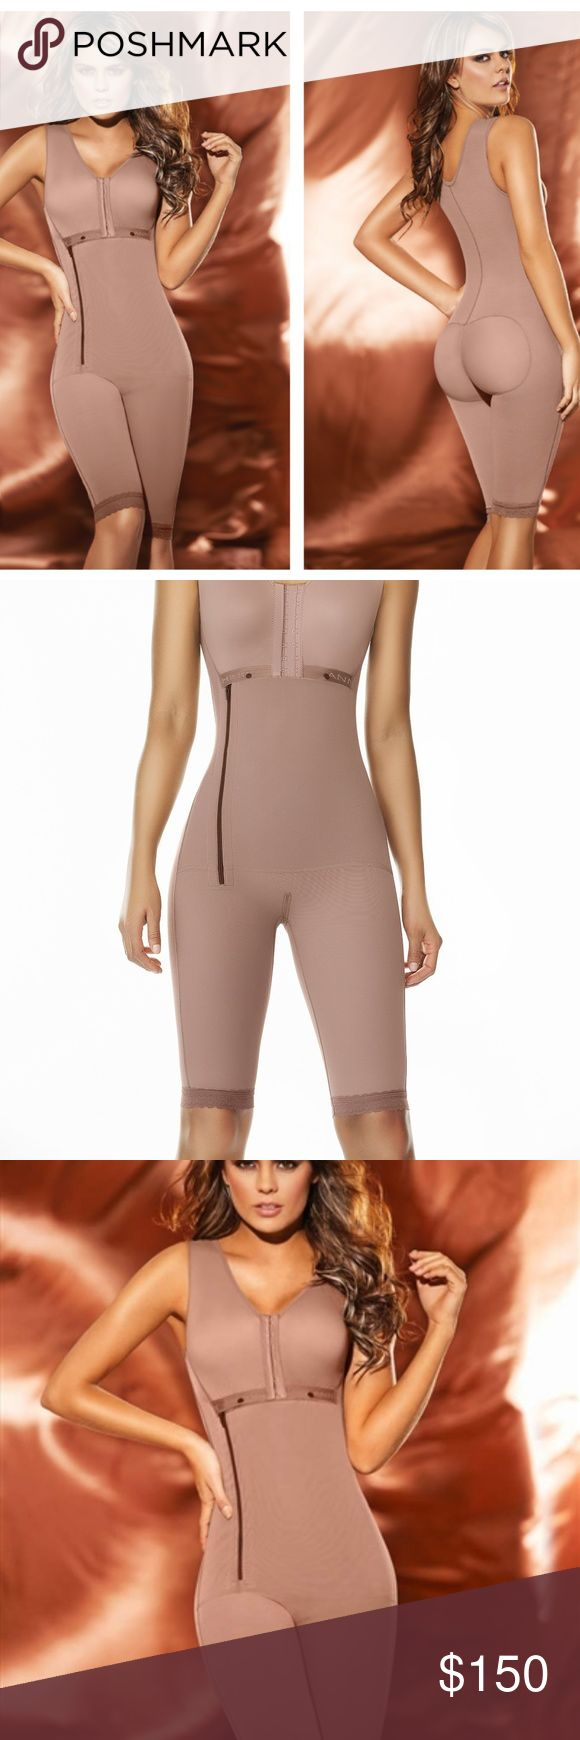 Ann Chery Powernet Scarlett Shapewear Ann Chery Powernet Scarlett Shapewear Reduce, Liposuction and Post Partum. High compression, Full body Shaper Controls abdomen and back Reduces hips and legs Surgery (Abdominoplasty, Liposuction and post partum) Open in the crotch Lift up the buttocks and breasts anti-bacterial fabric Brand Ann Chery Girdle Powernet Girdle Comfort Line Color Cocoa Ann Chery Intimates & Sleepwear Shapewear